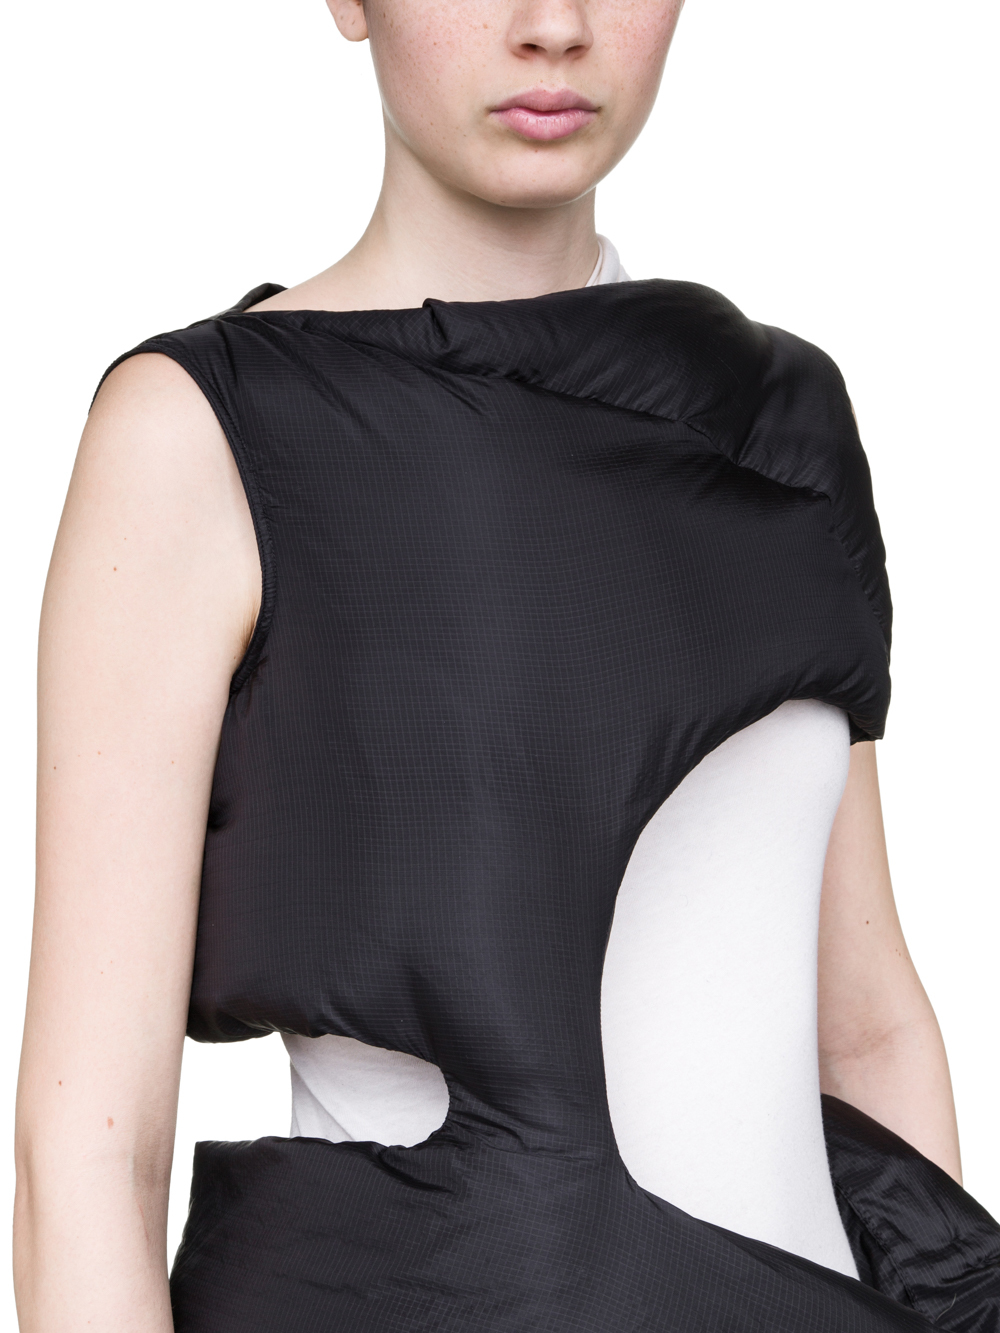 RICK OWENS OFF-THE-RUNWAY MINISHRED TUNIC IN BLACK